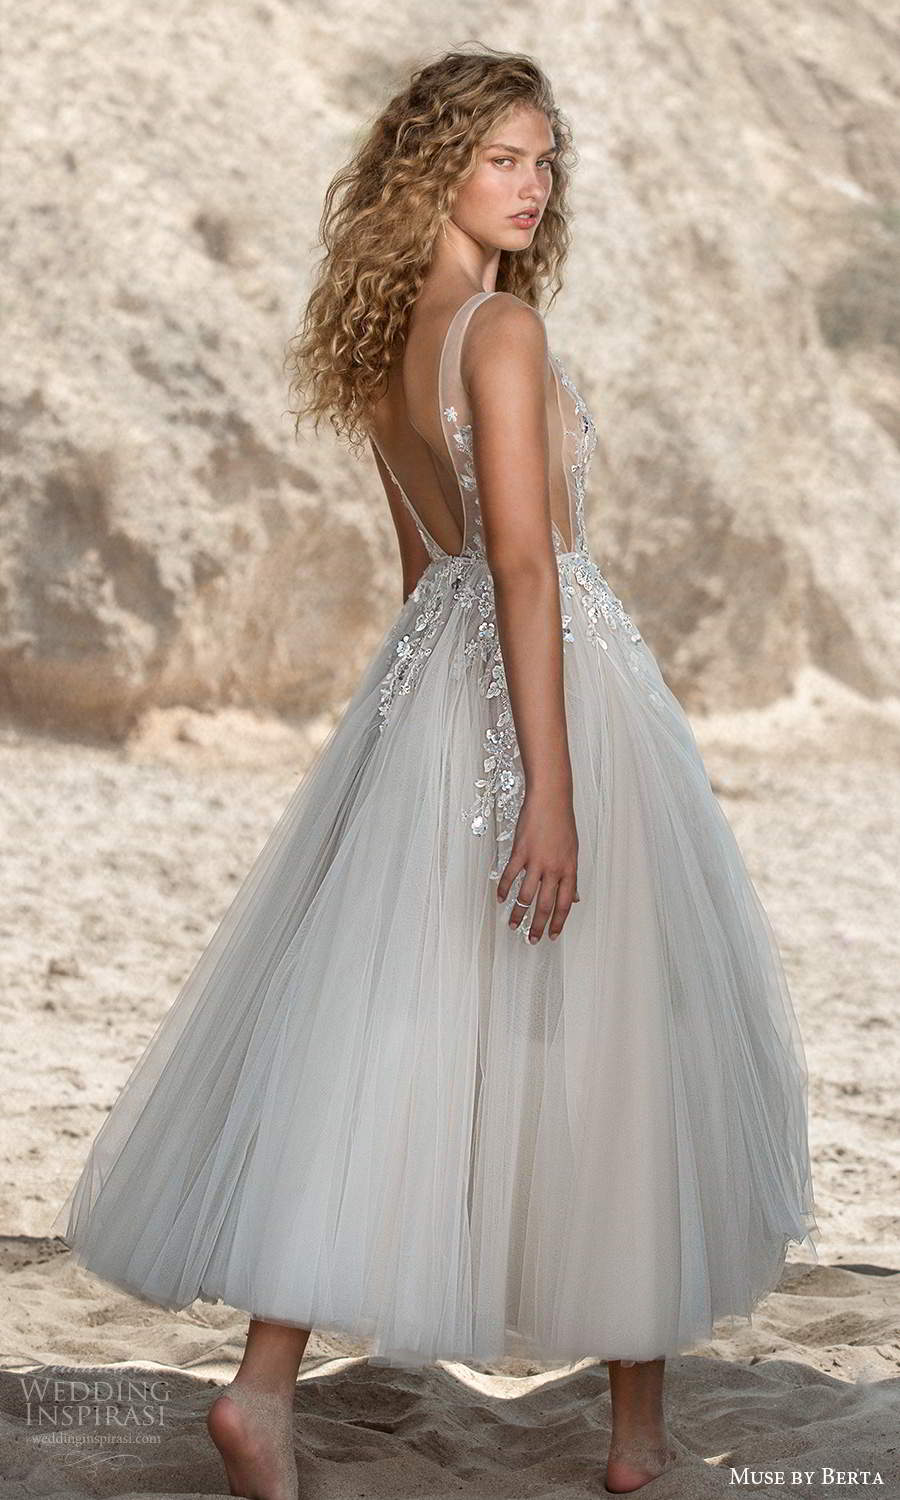 muse by berta fall 2021 bridal sleeveless thick straps plunging v neckline side cutout sheer embellished bodice a line ball gown tea length wedding dress low back (6) bv